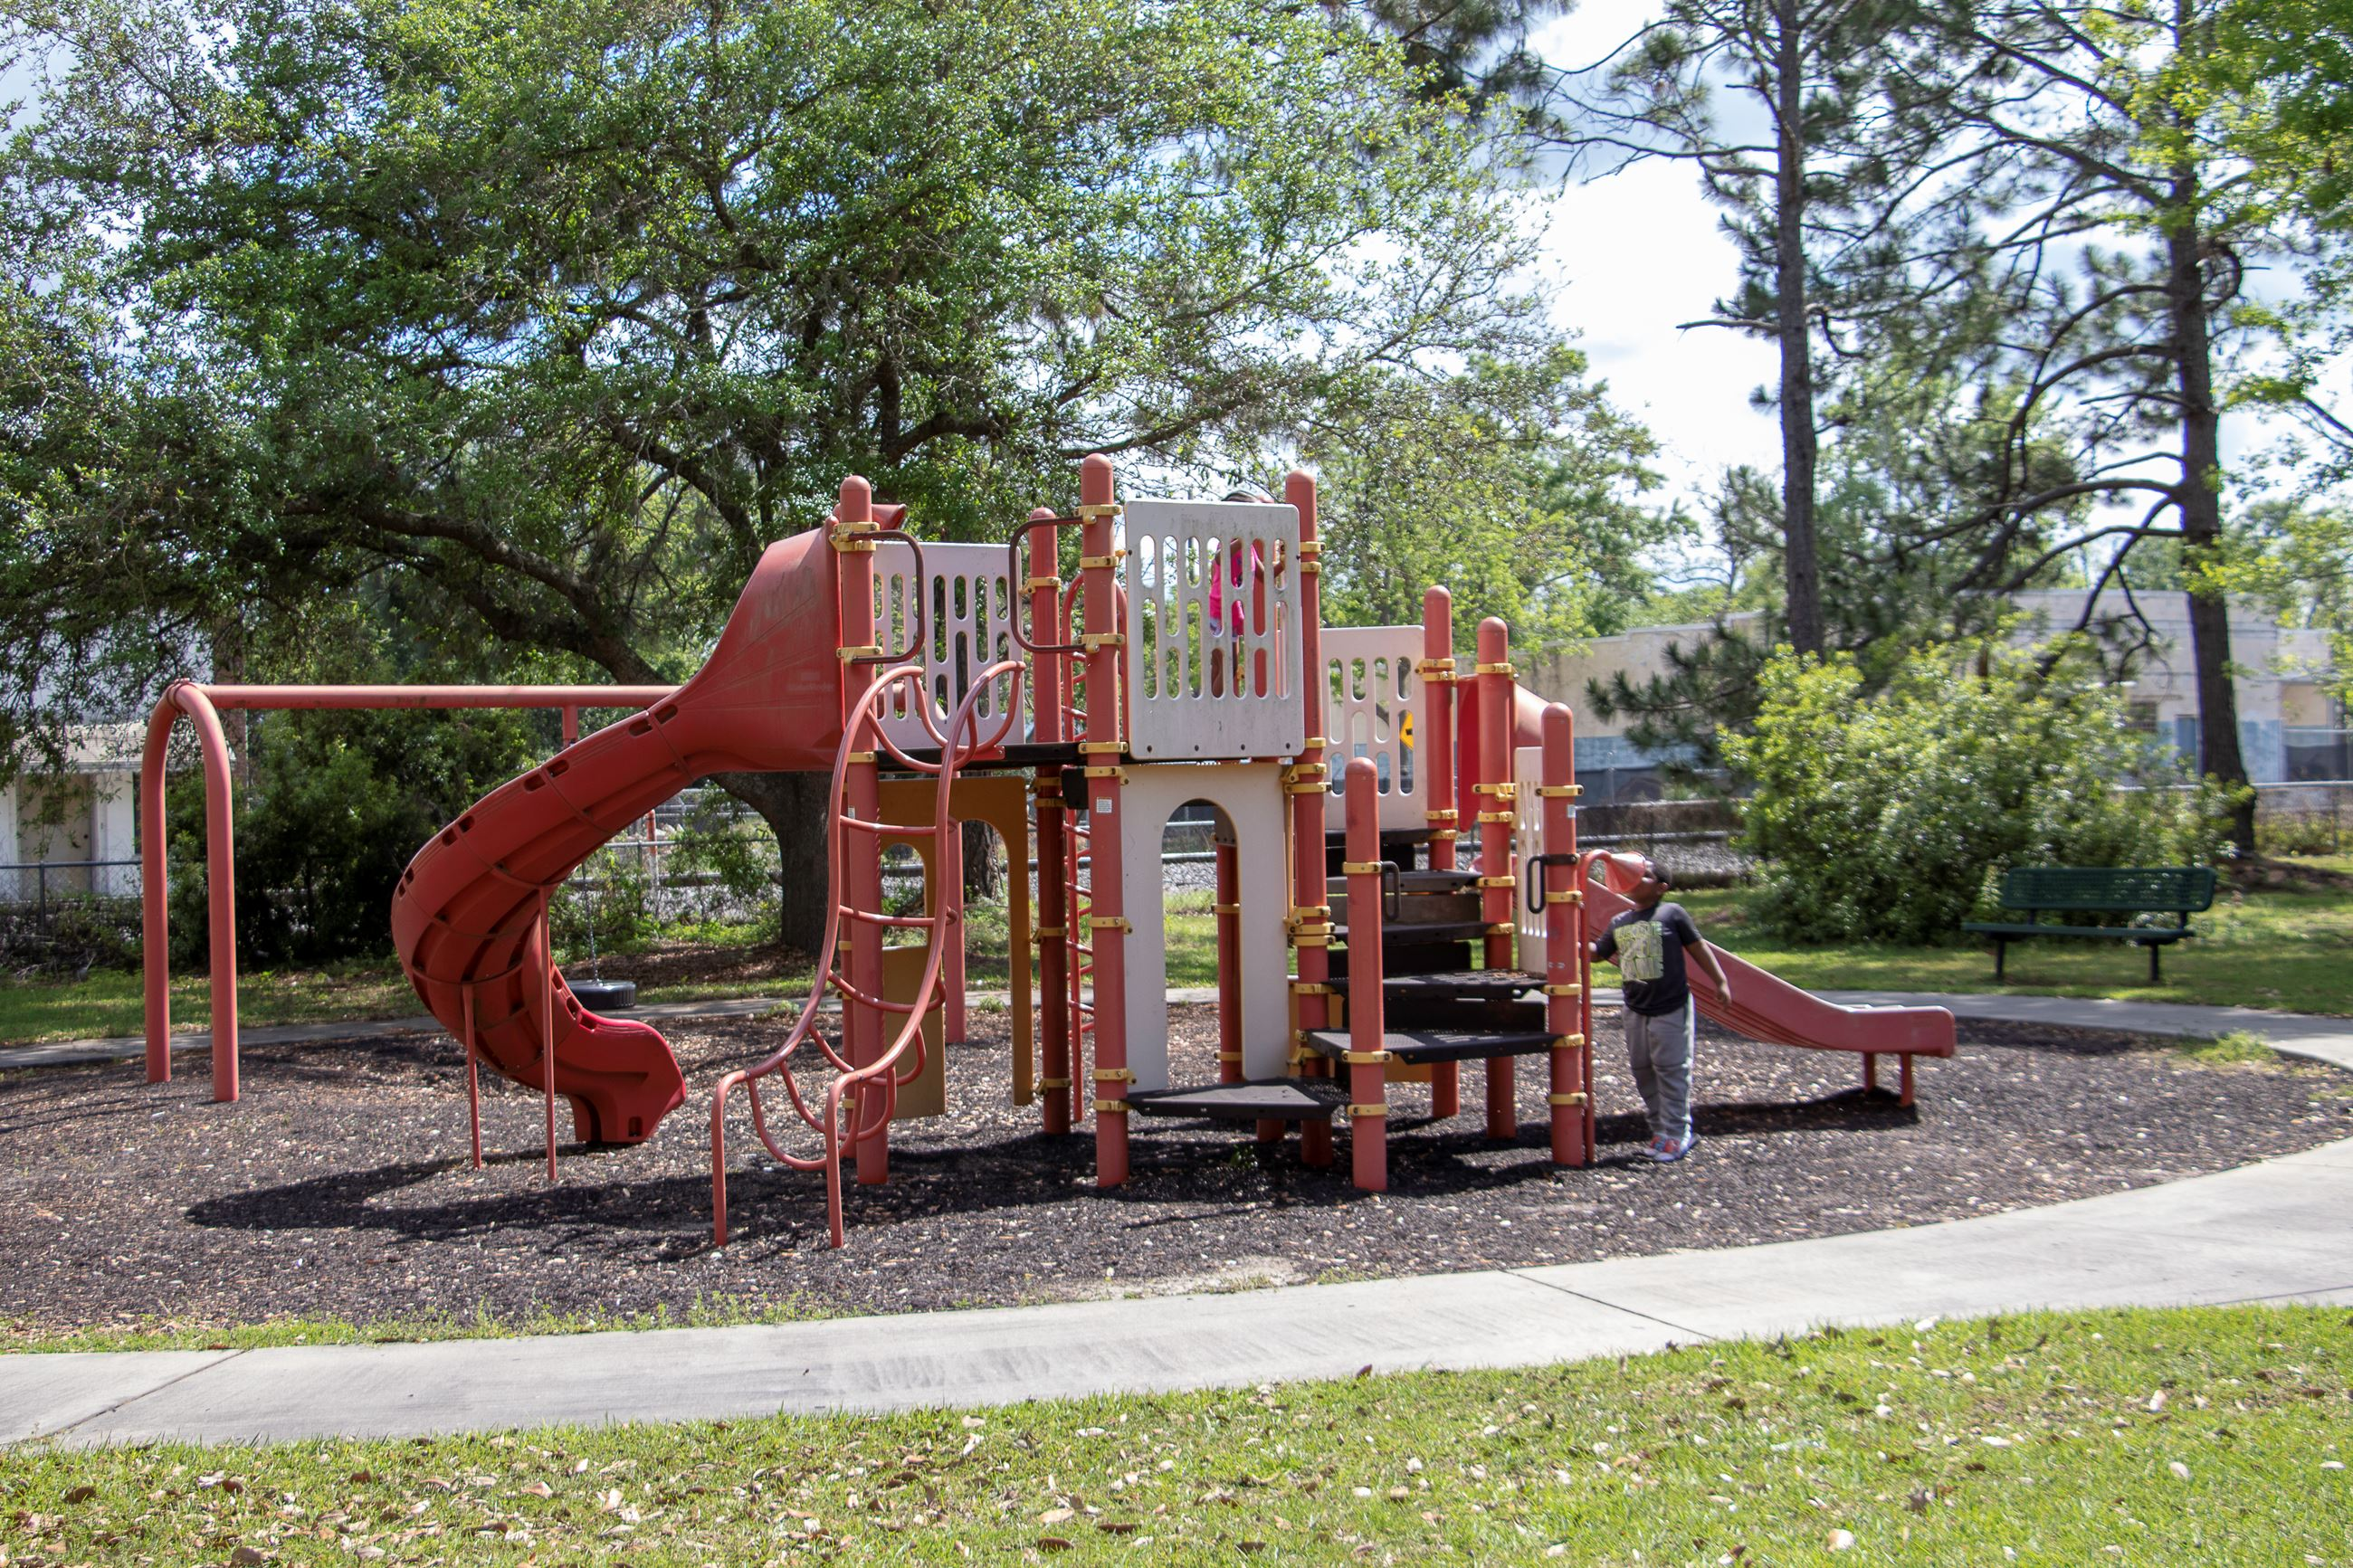 Image of children playing on a playground.